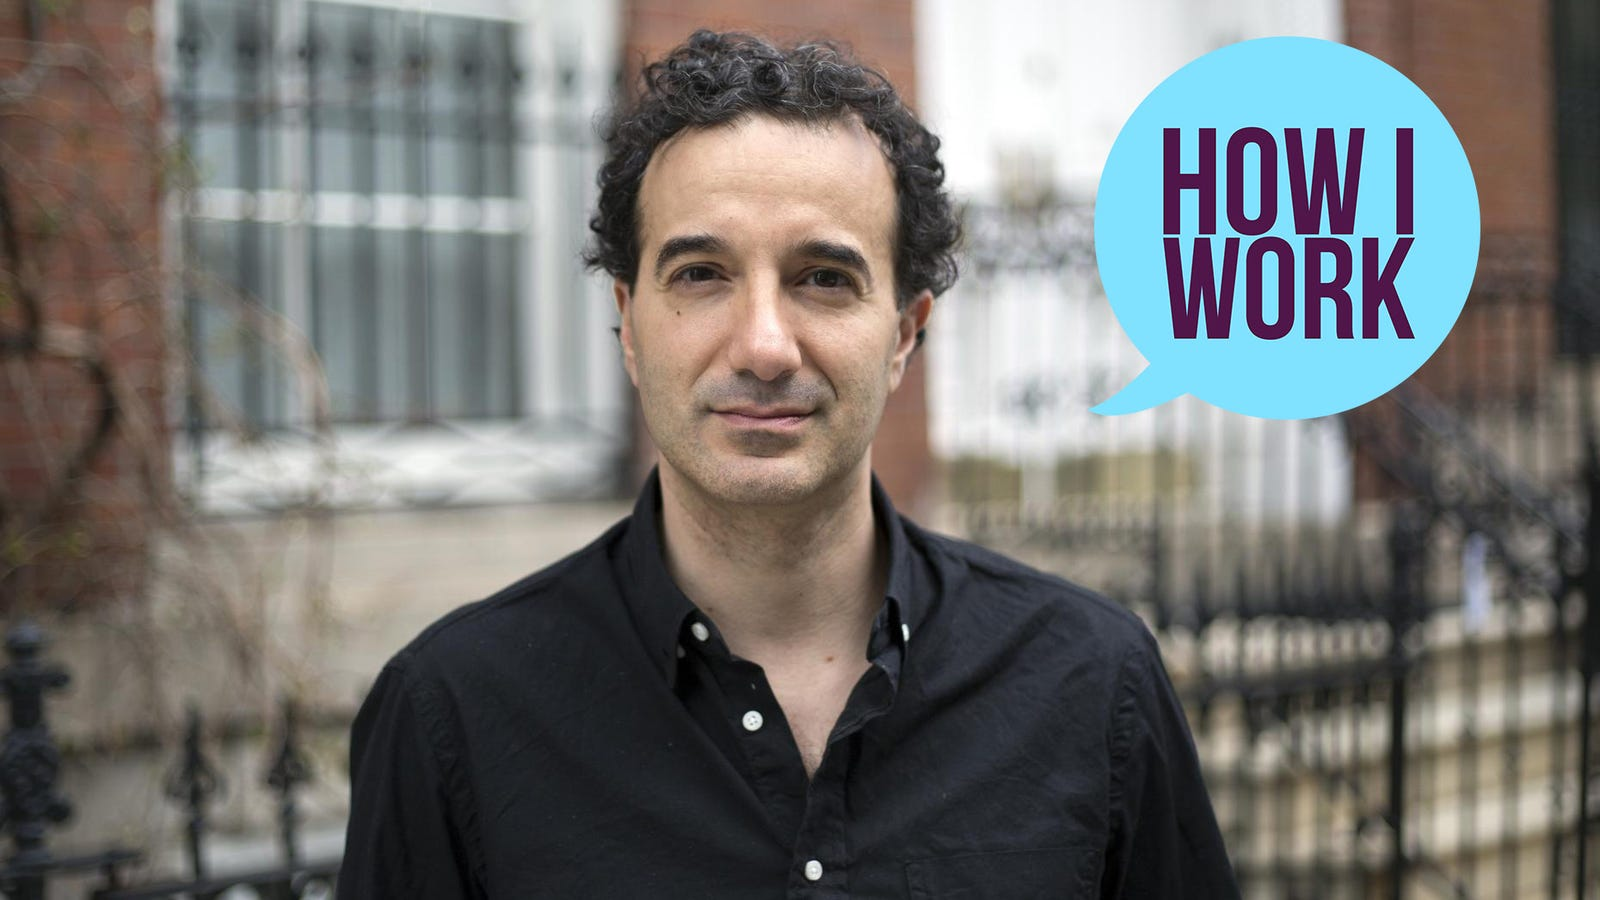 I'm Jad Abumrad, Founder And Co-Host Of Radiolab, And This Is How I Work